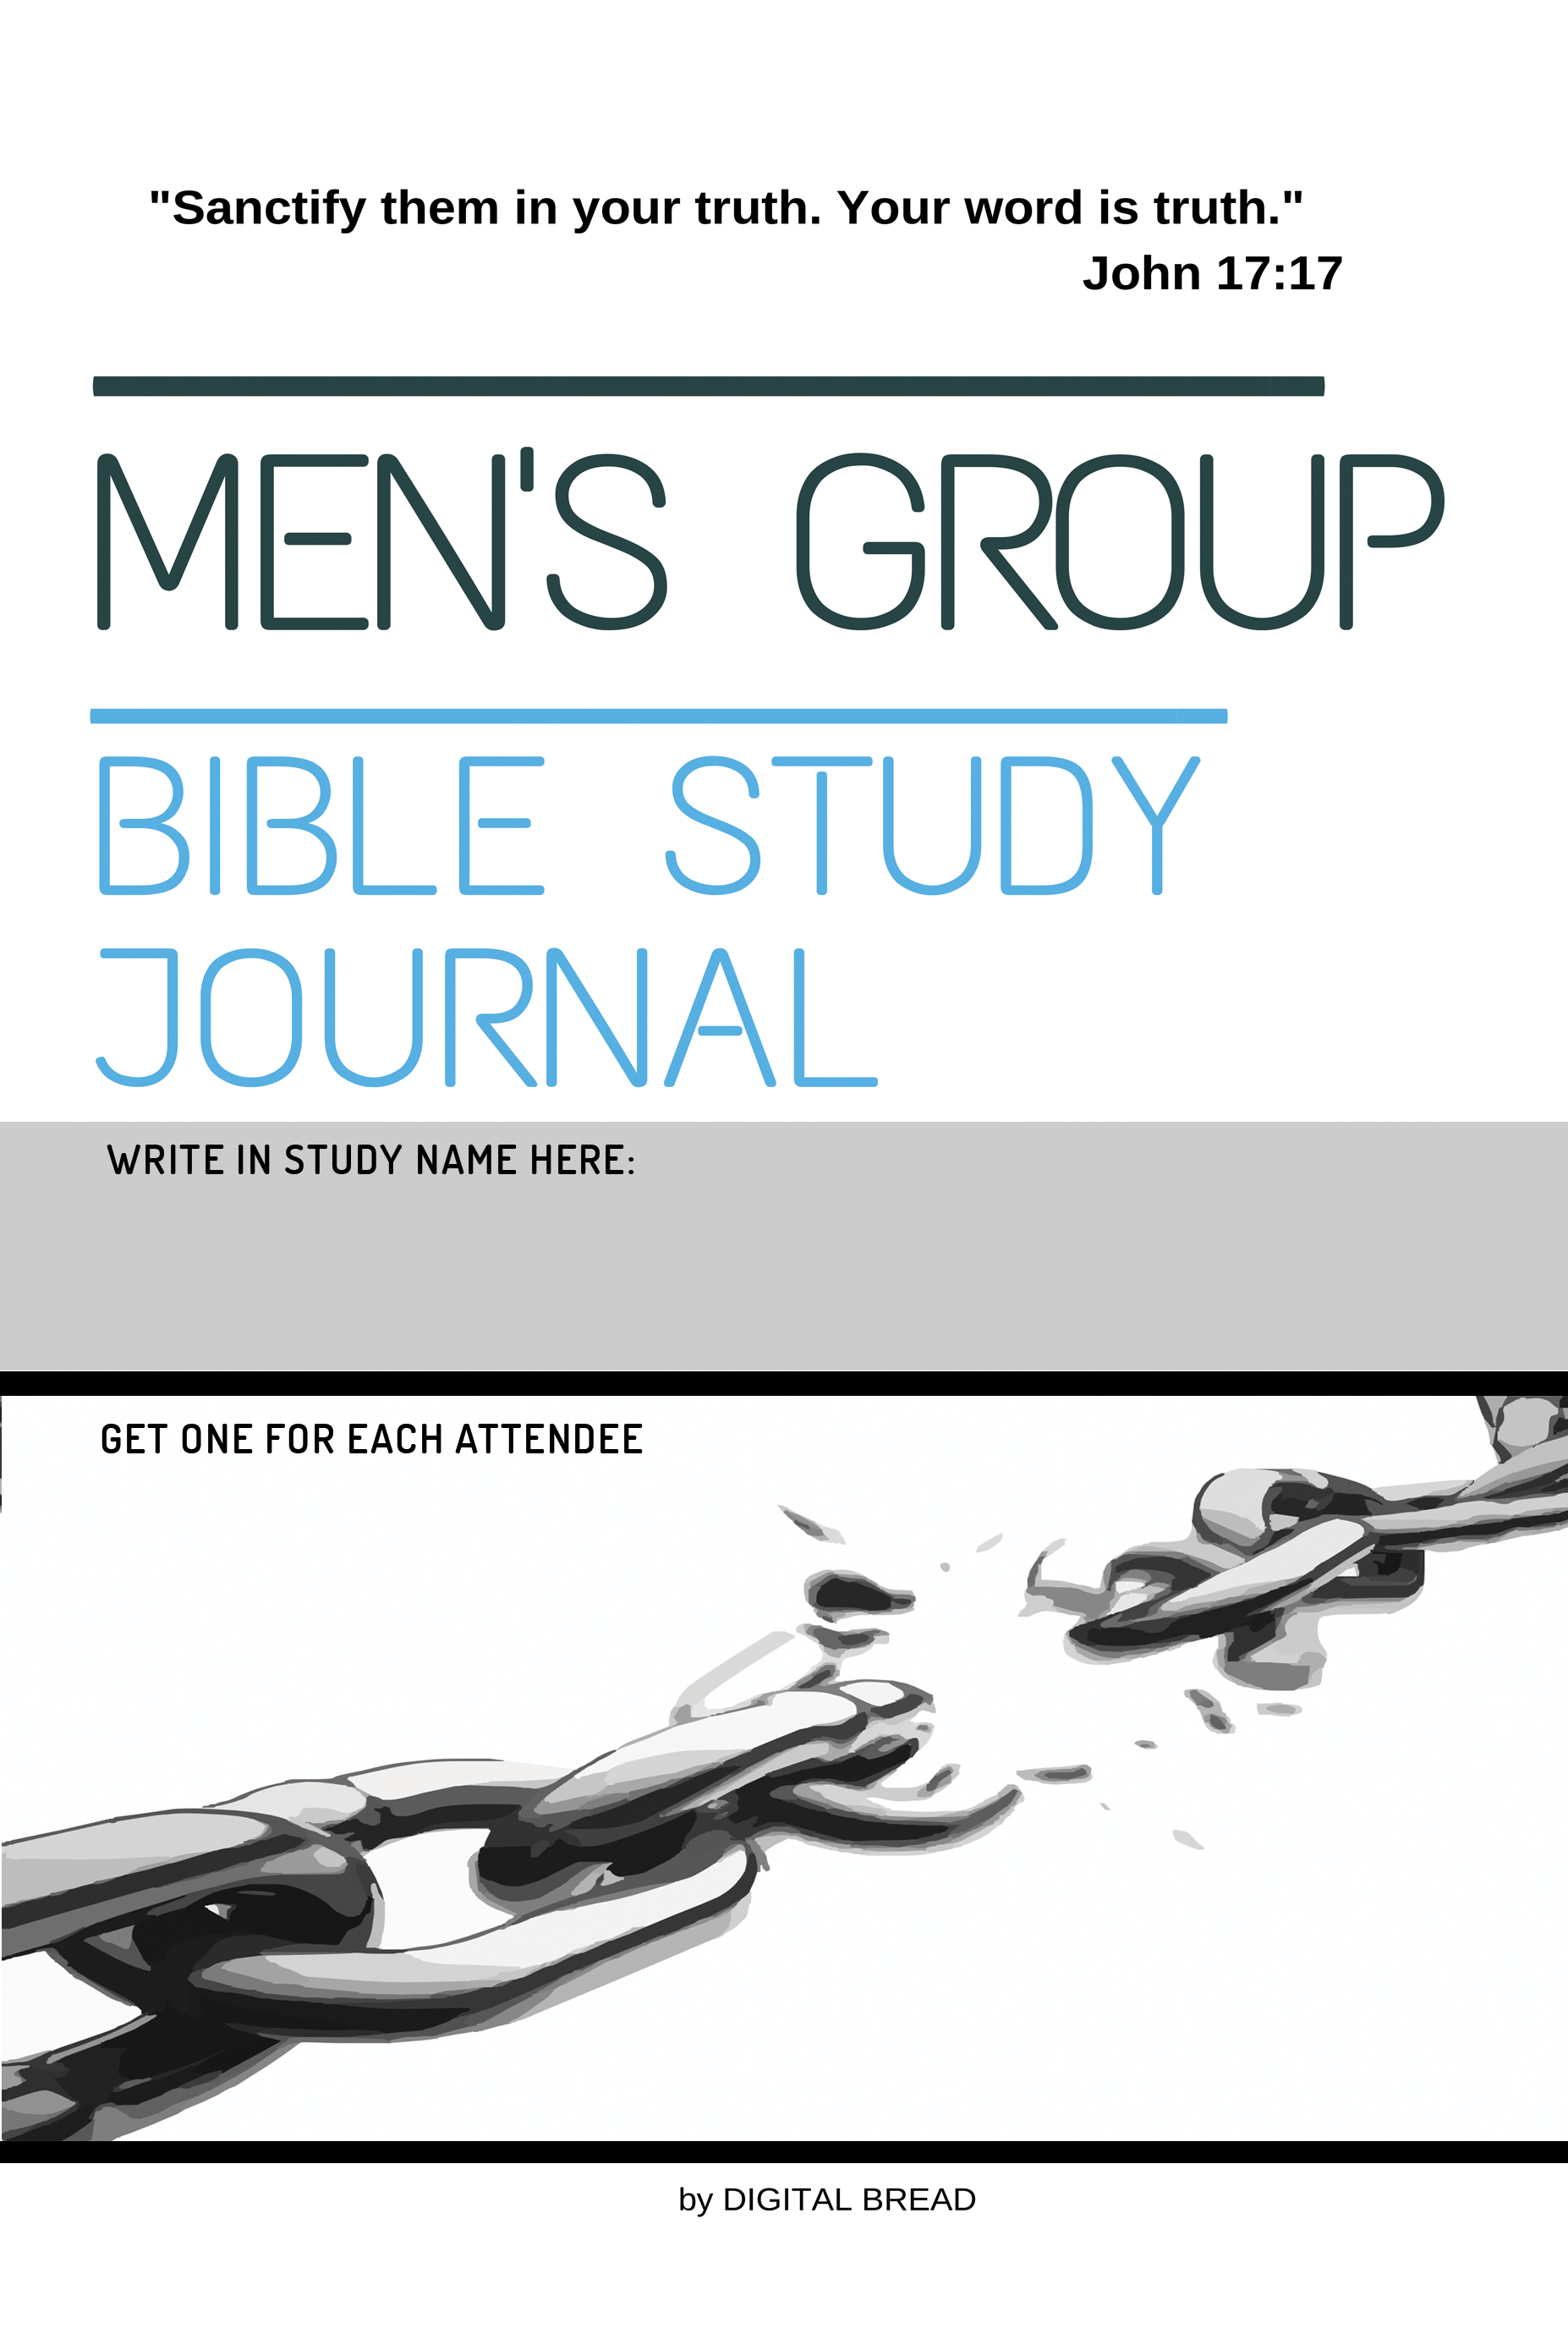 MEN'S GROUP Bible Study Journal: